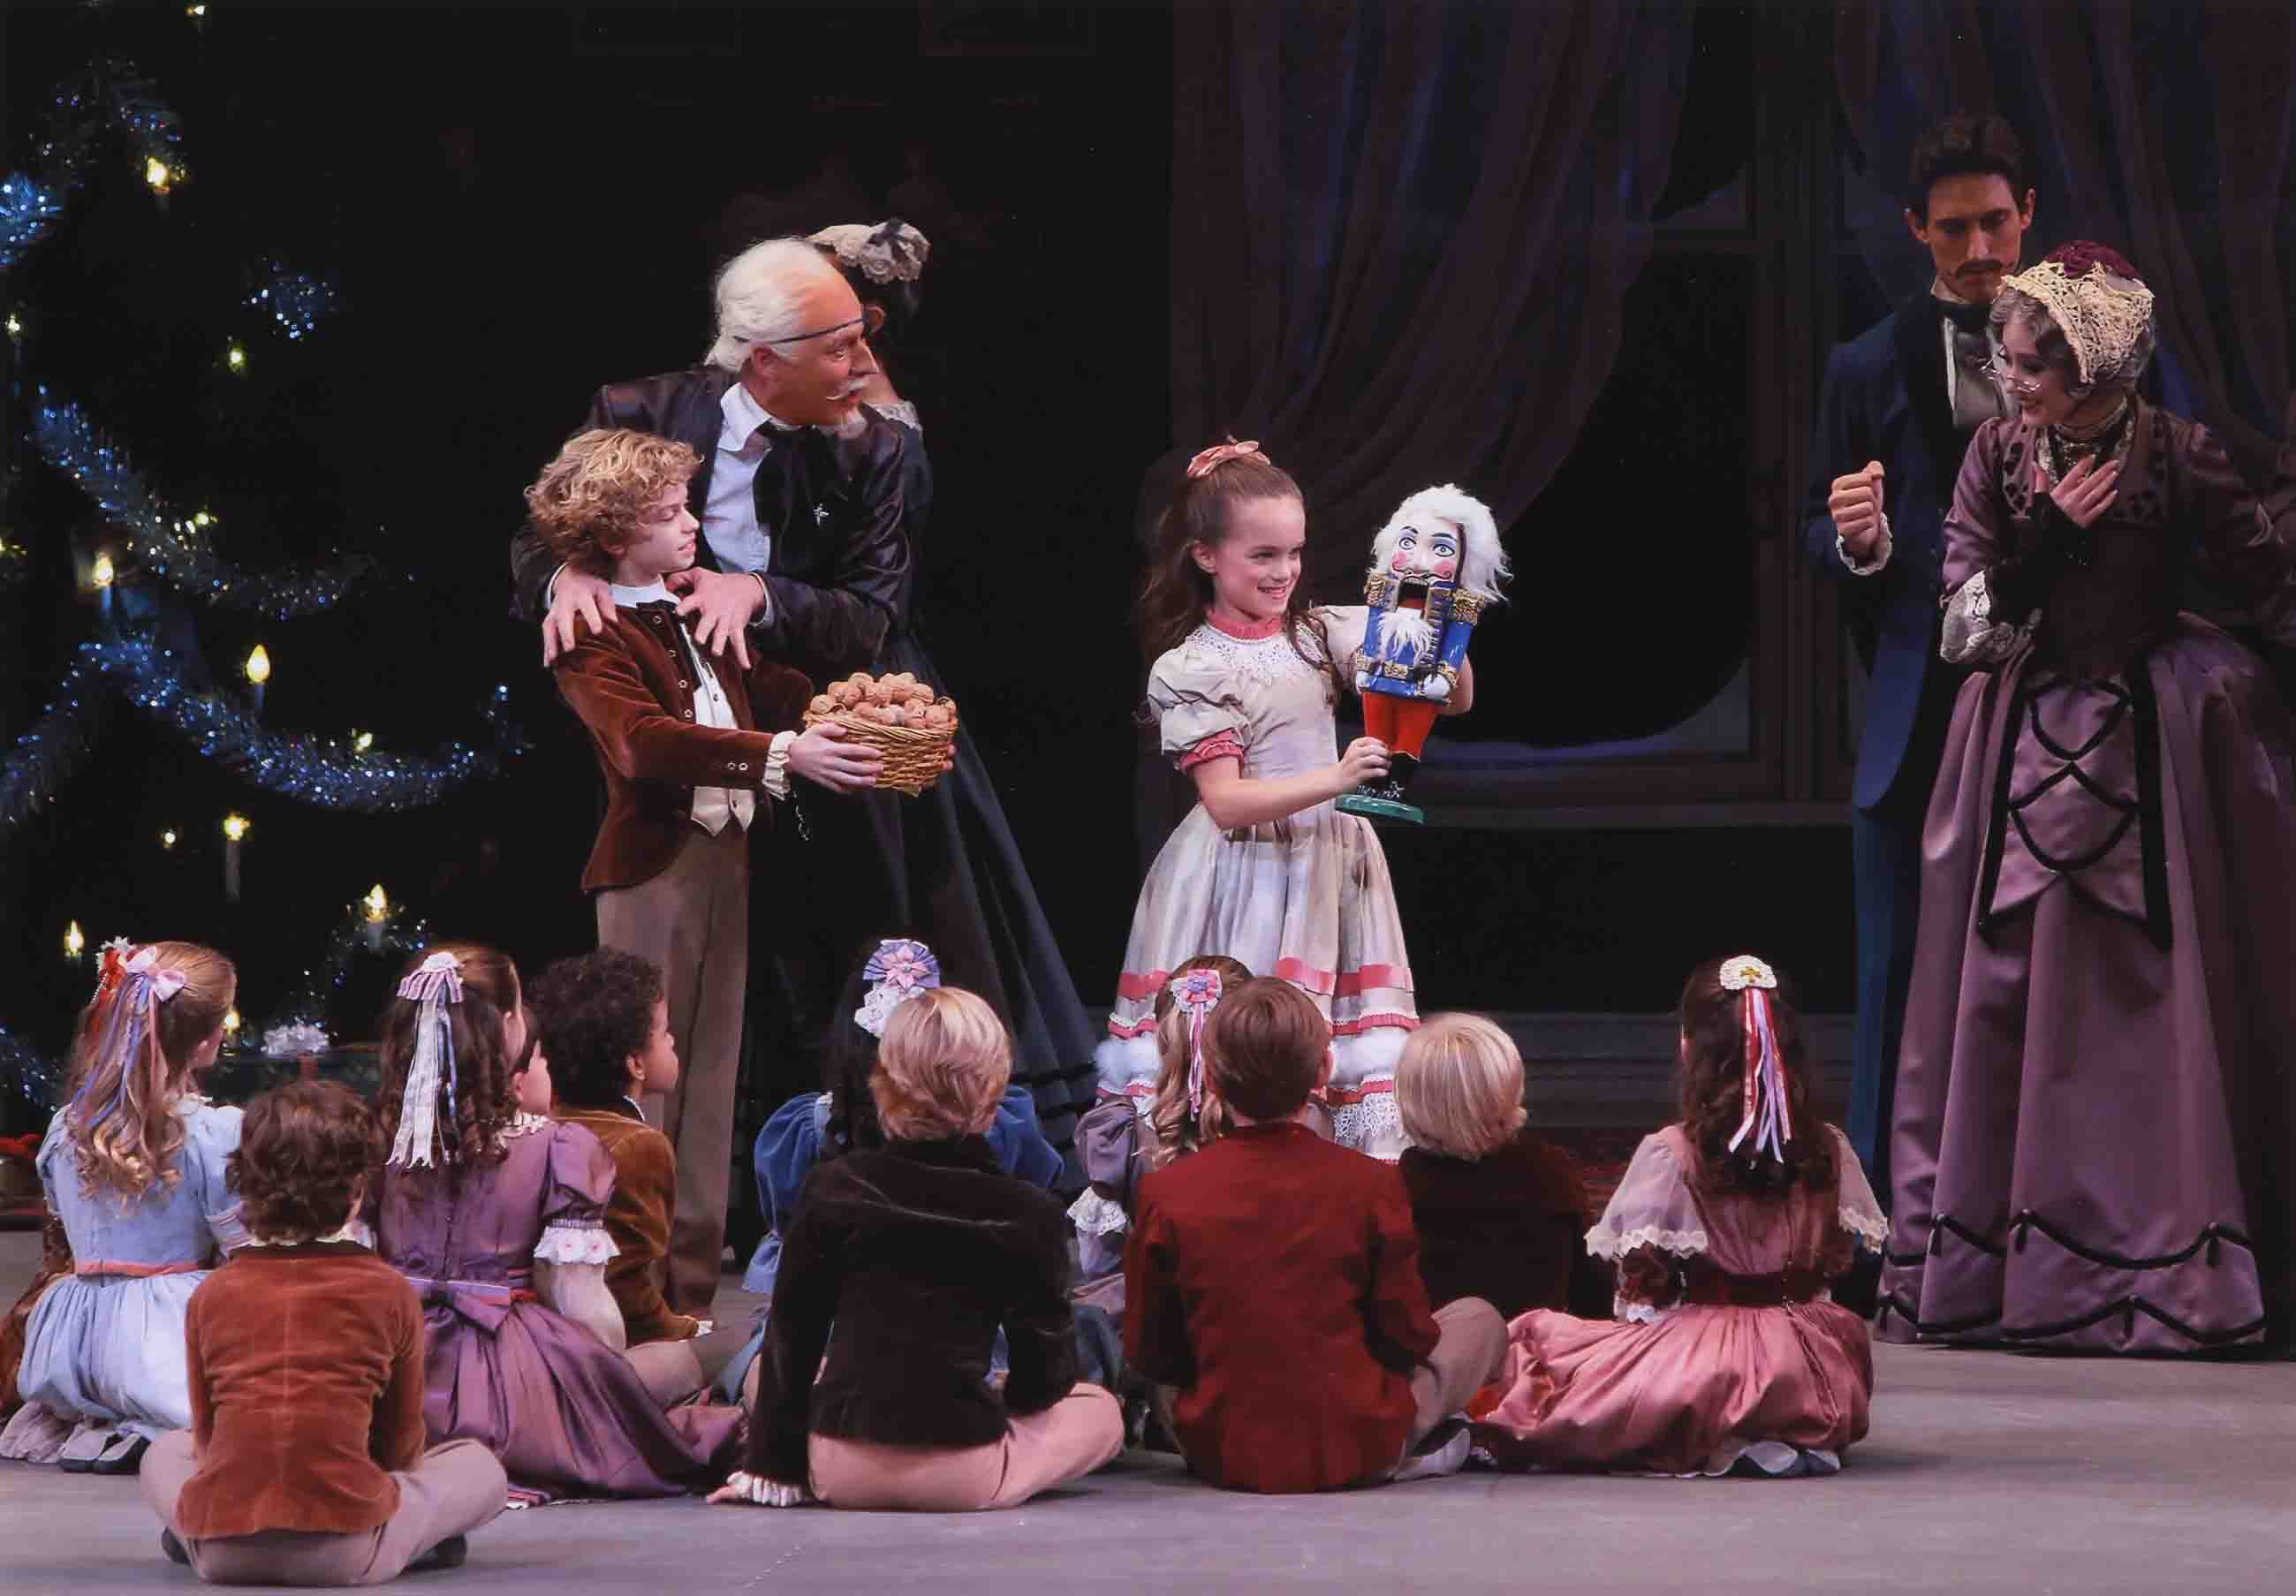 Nutcracker_Drosselmeier and kids cropped.jpg